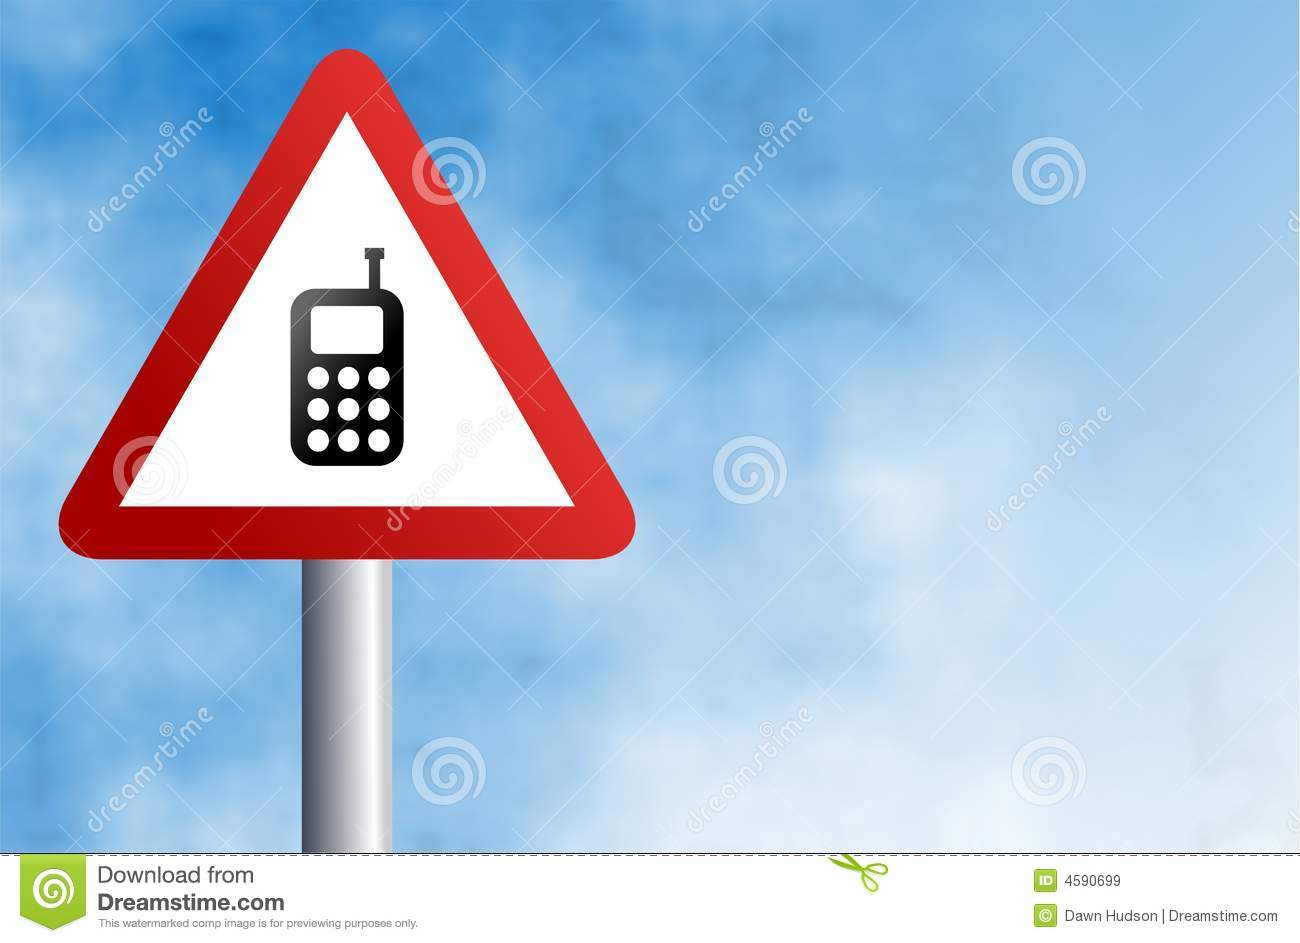 Mobile phone sign